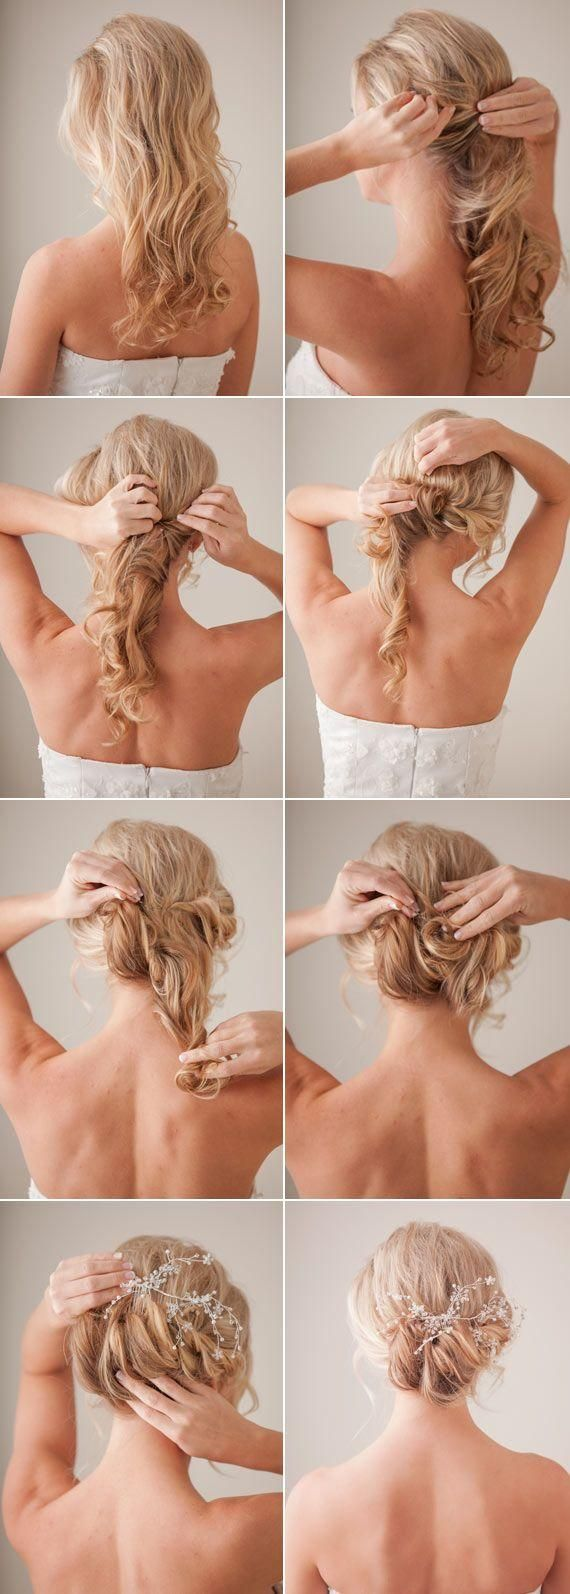 best 25+ bridal hair tutorial ideas on pinterest | chignon updo